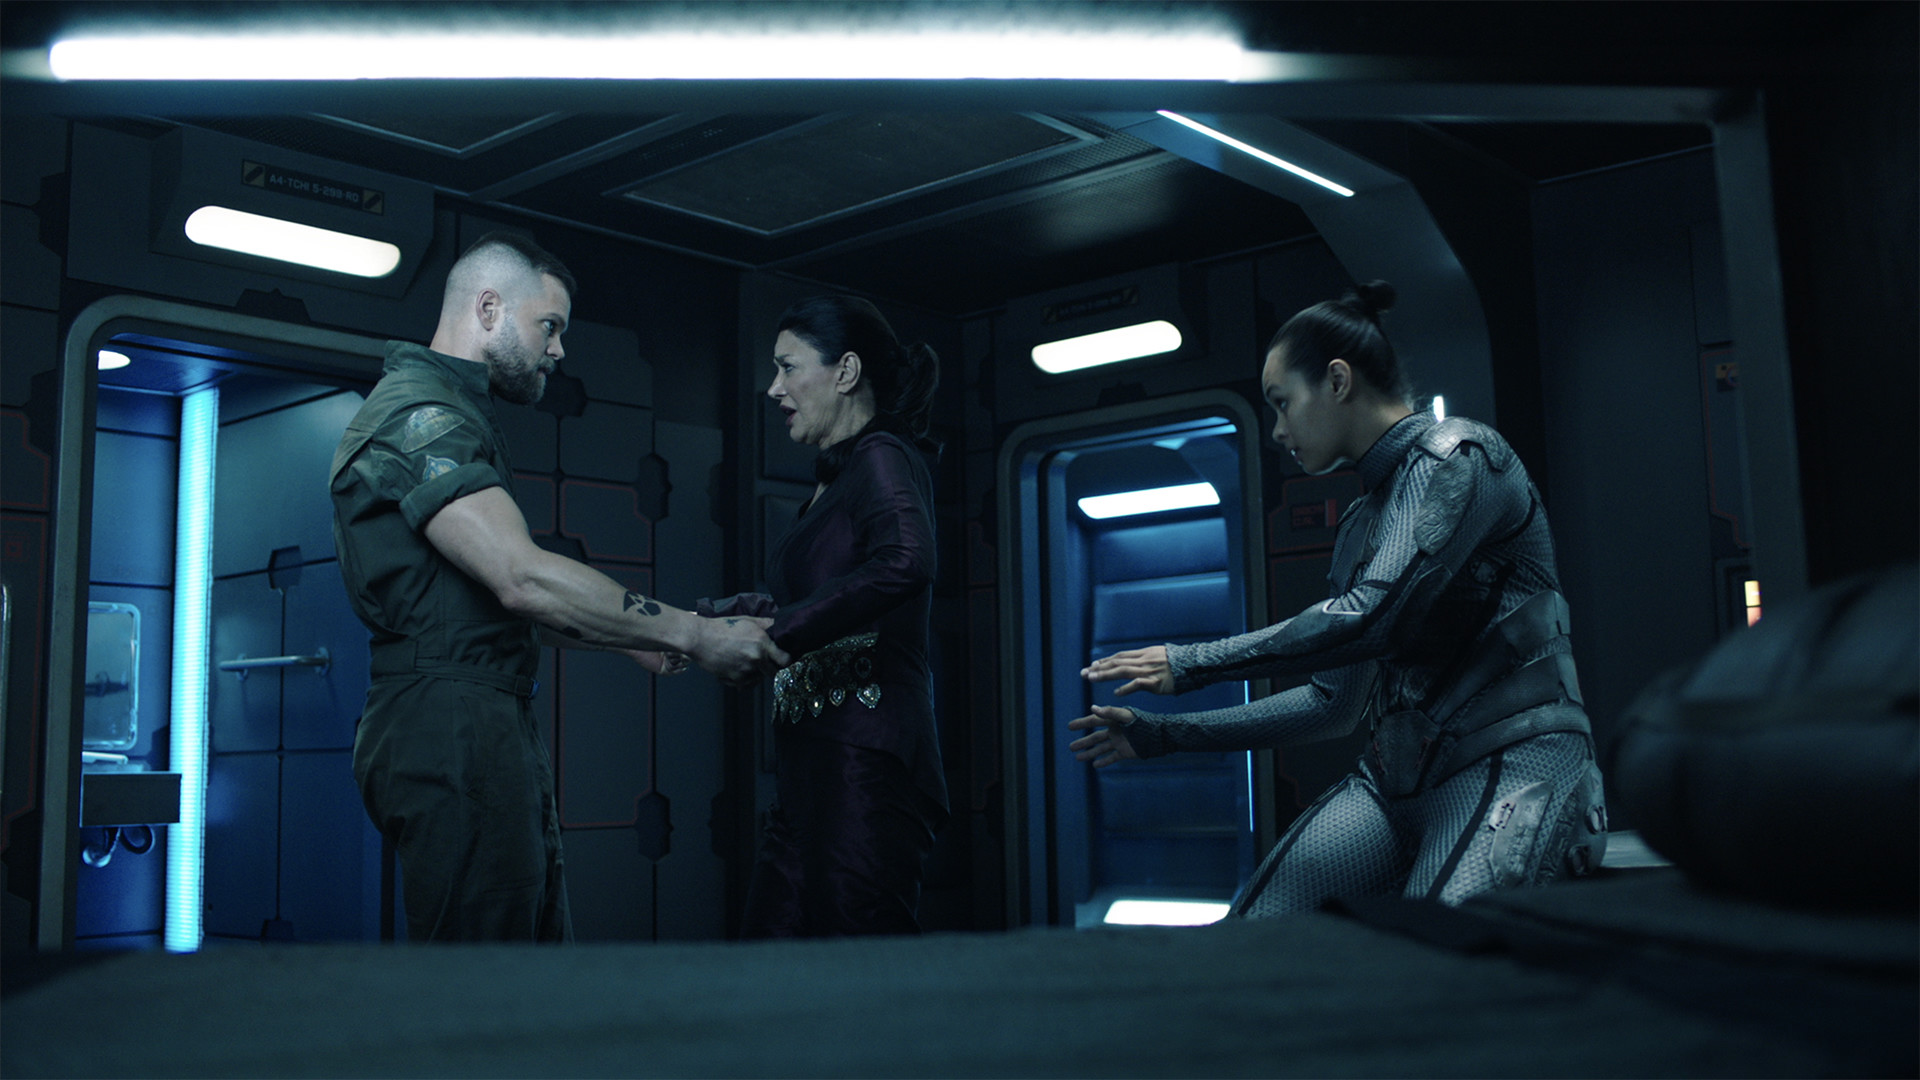 theexpanse_10thoughts_episode303_8.jpg